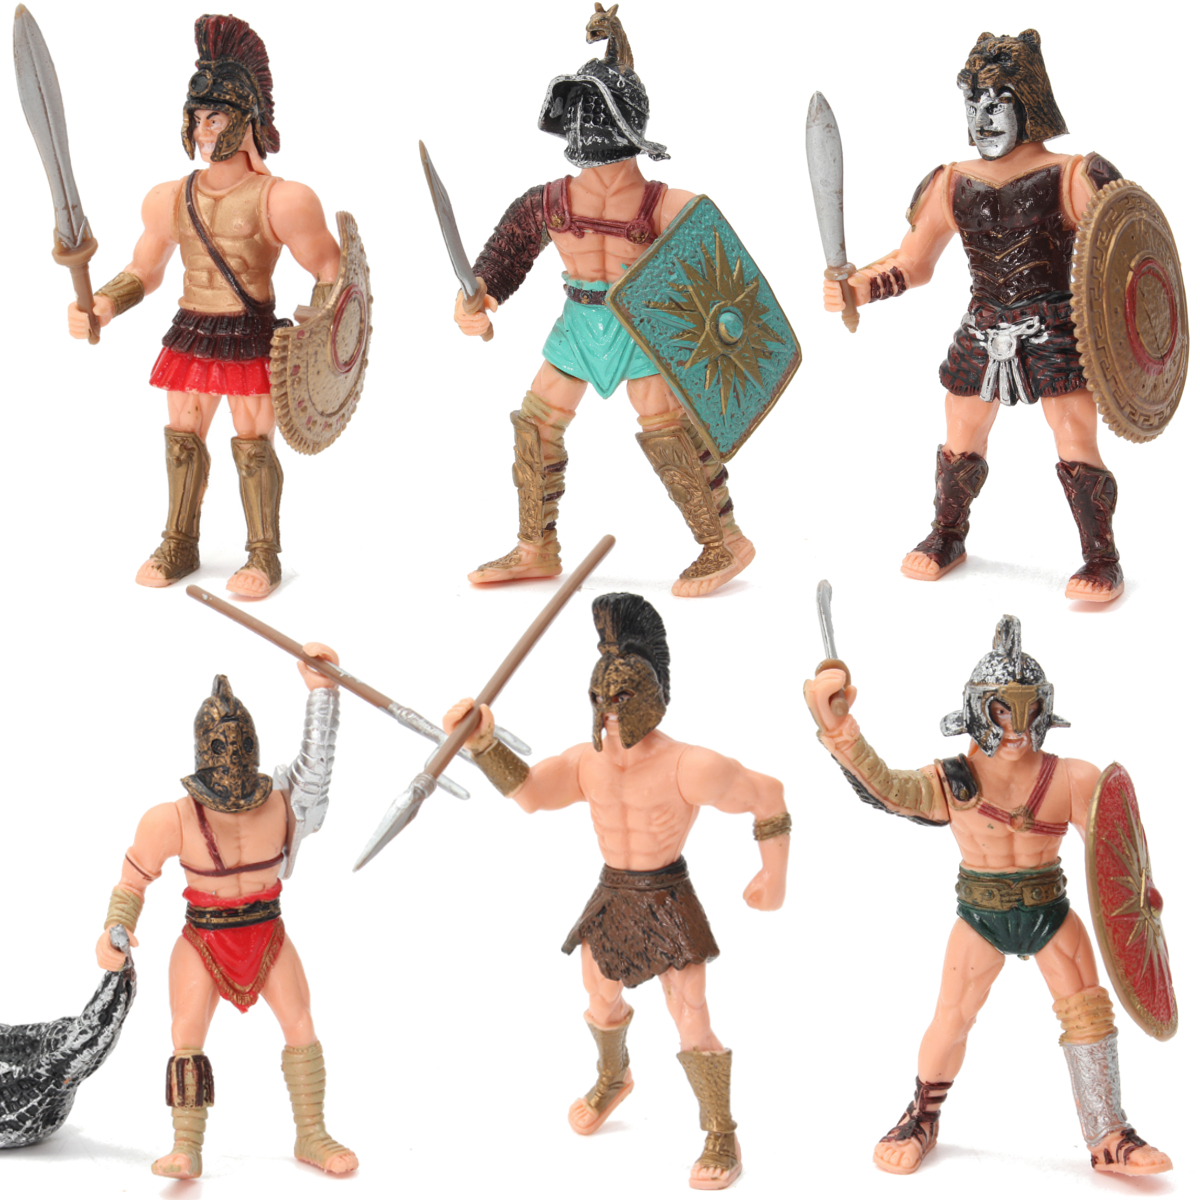 6Pcs DIY Gladiator Warrior Fighter Roman Soldier Action Figure Playset Weapons Gift Military Scenes